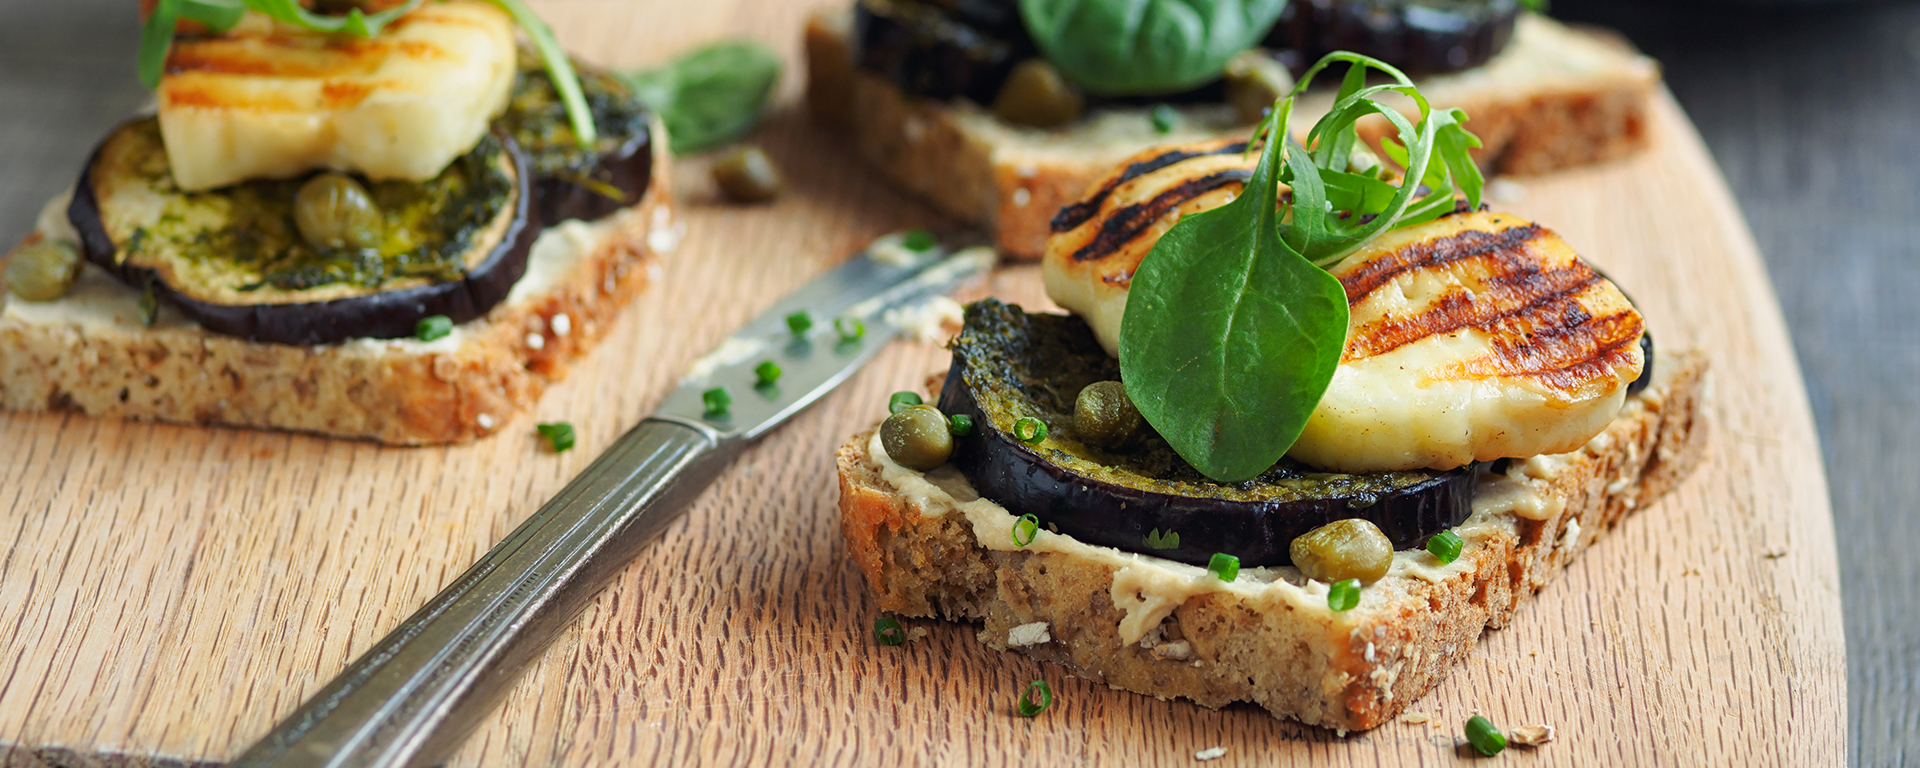 Photo for - Roasted Vegetable Tartine with Arugula Pesto and Grilled Halloumi